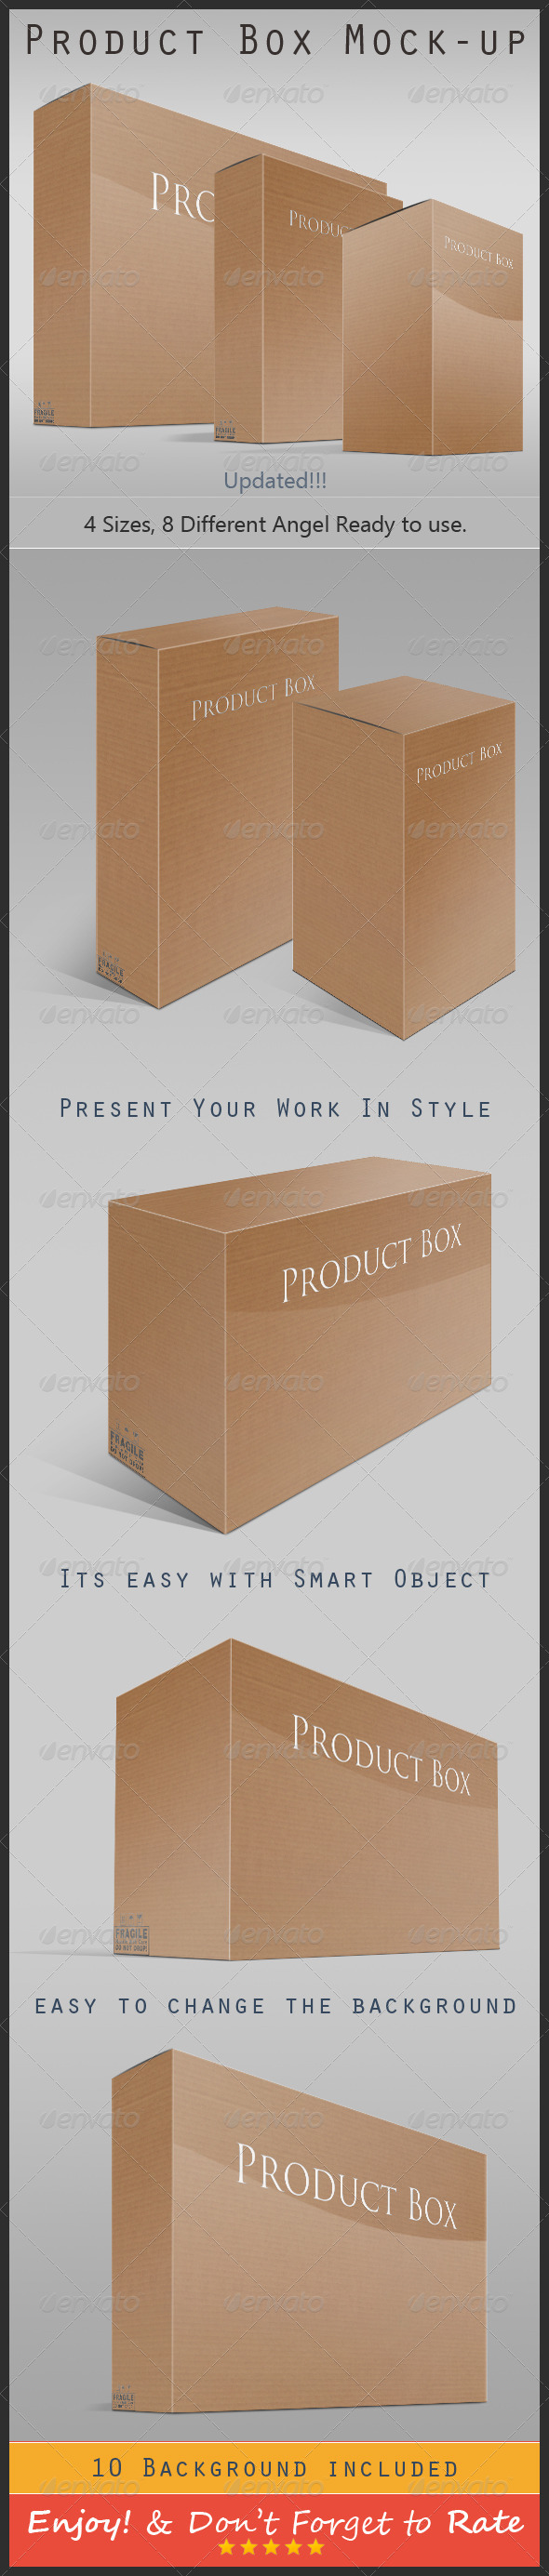 Product Box Mock-up